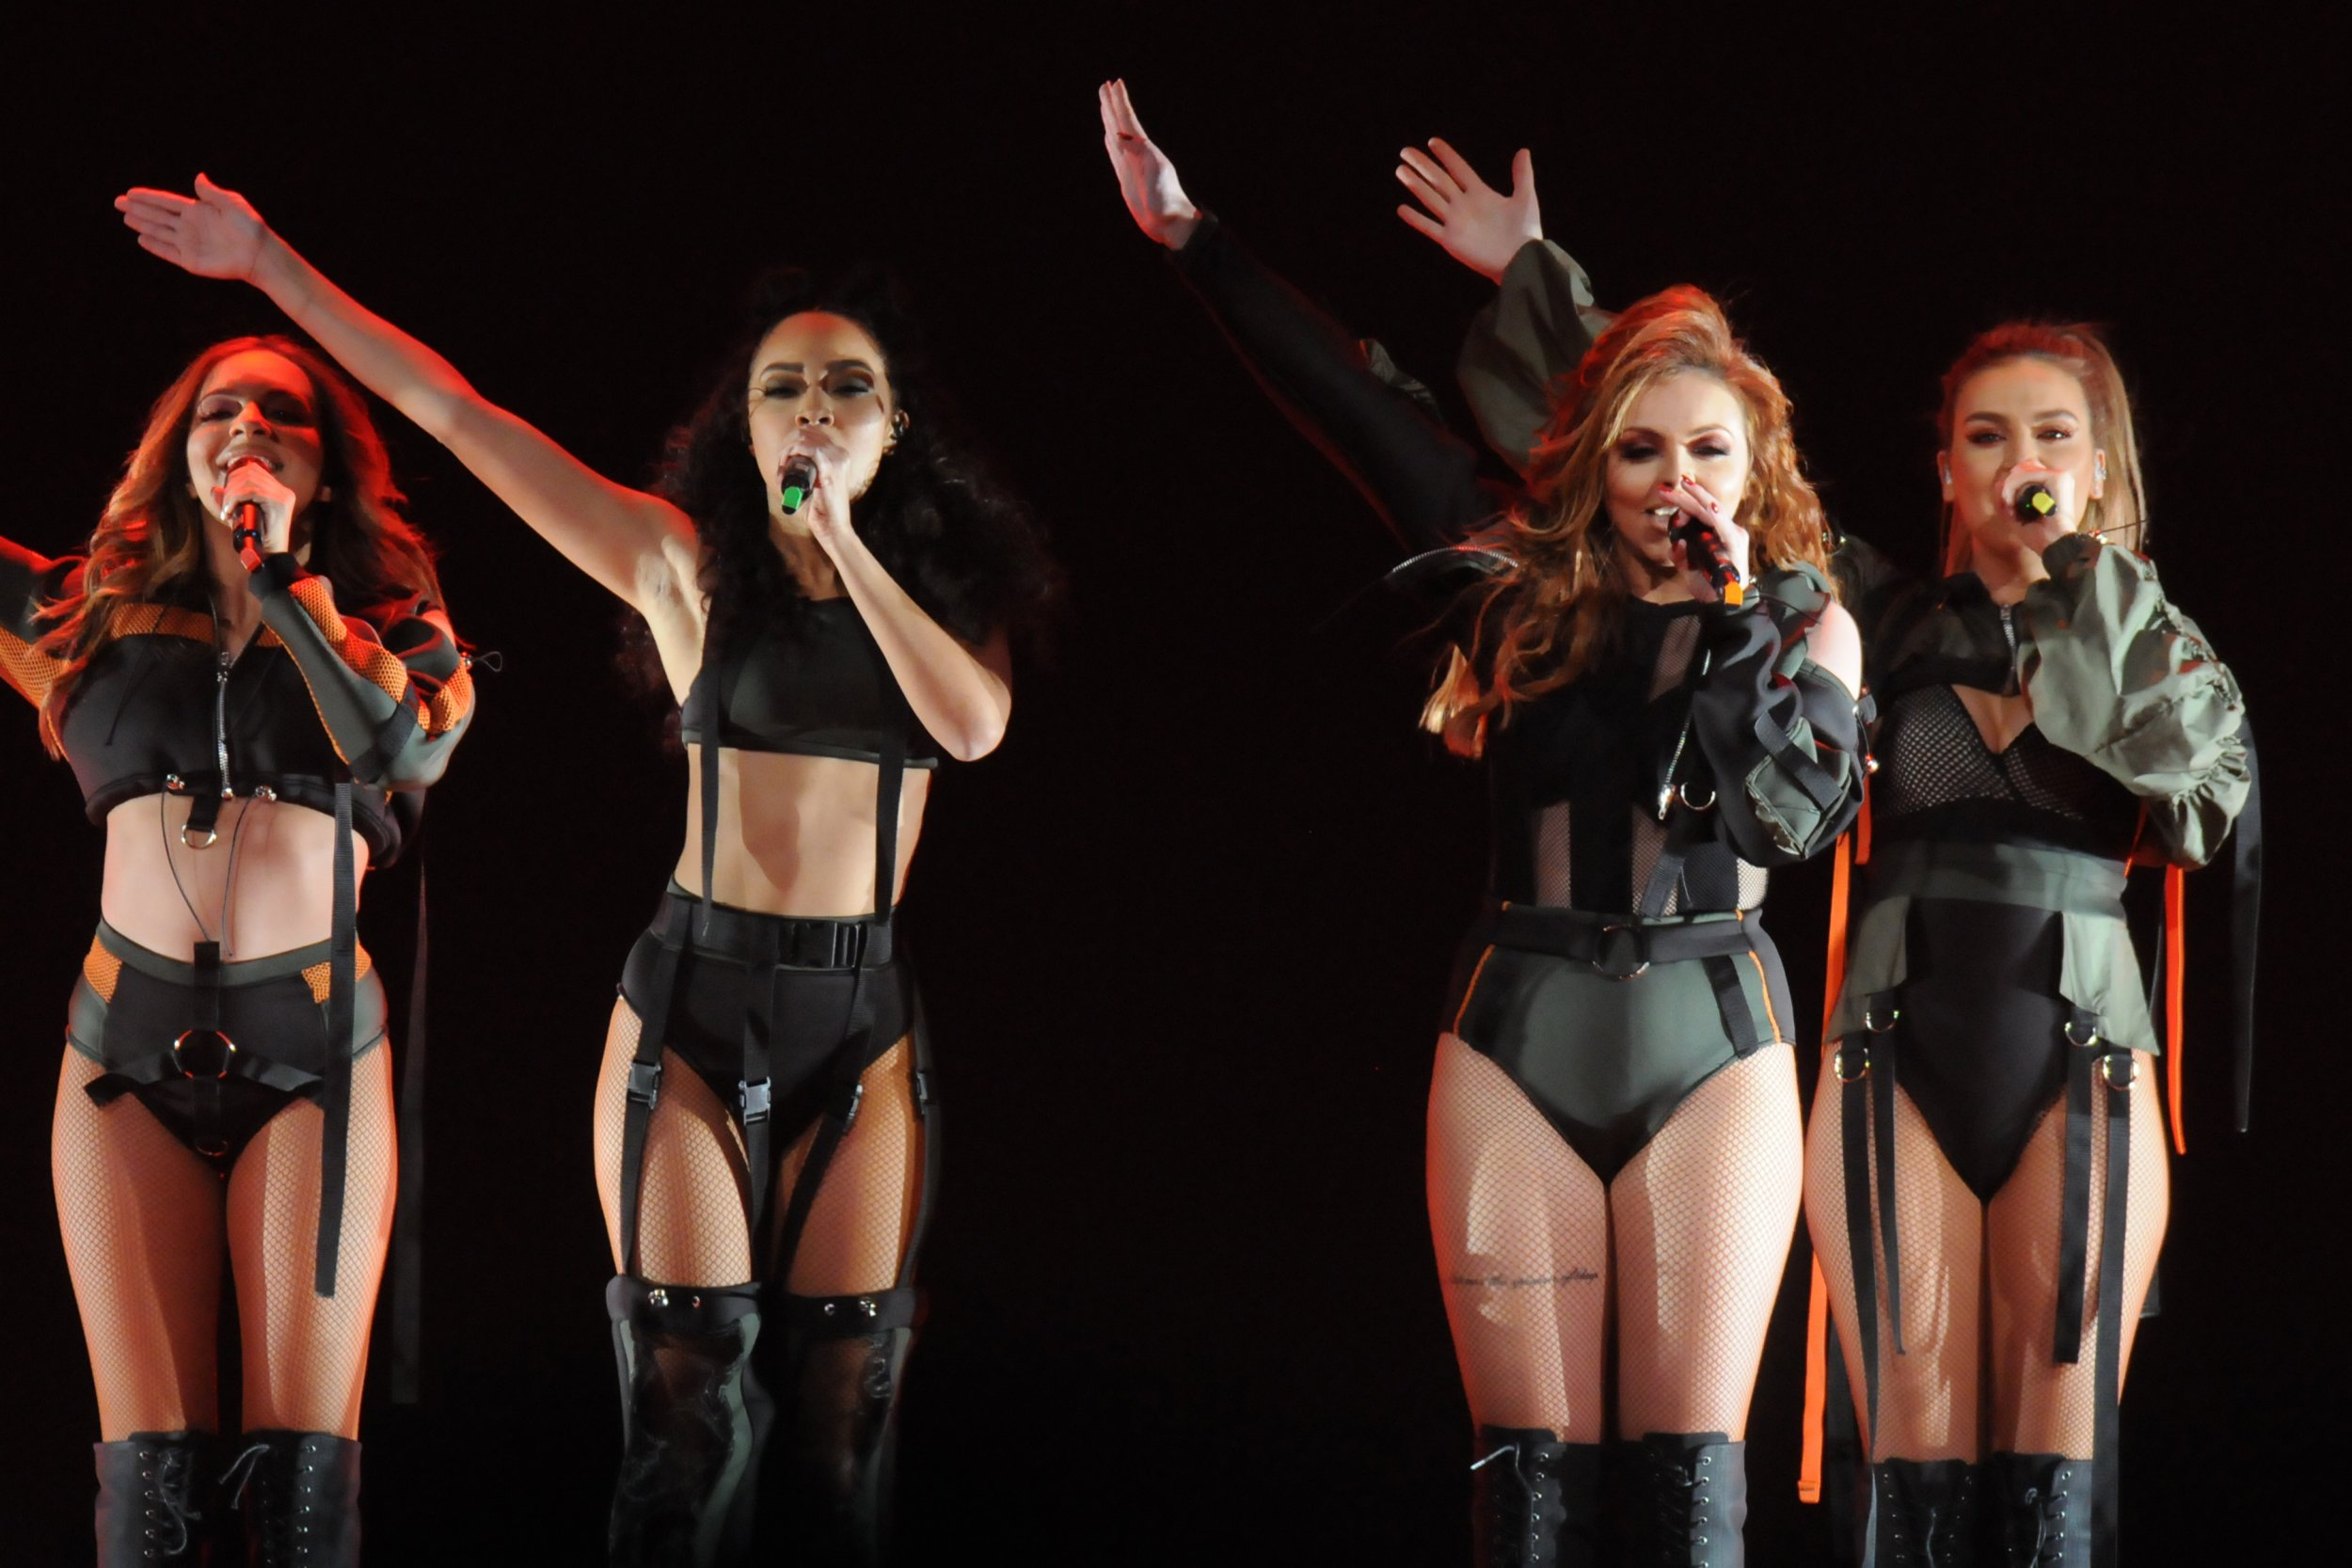 Little Mix kiss goodbye to split rumours as they slay on stage after Jesy Nelson puts 'feud' bullsh*t to bed